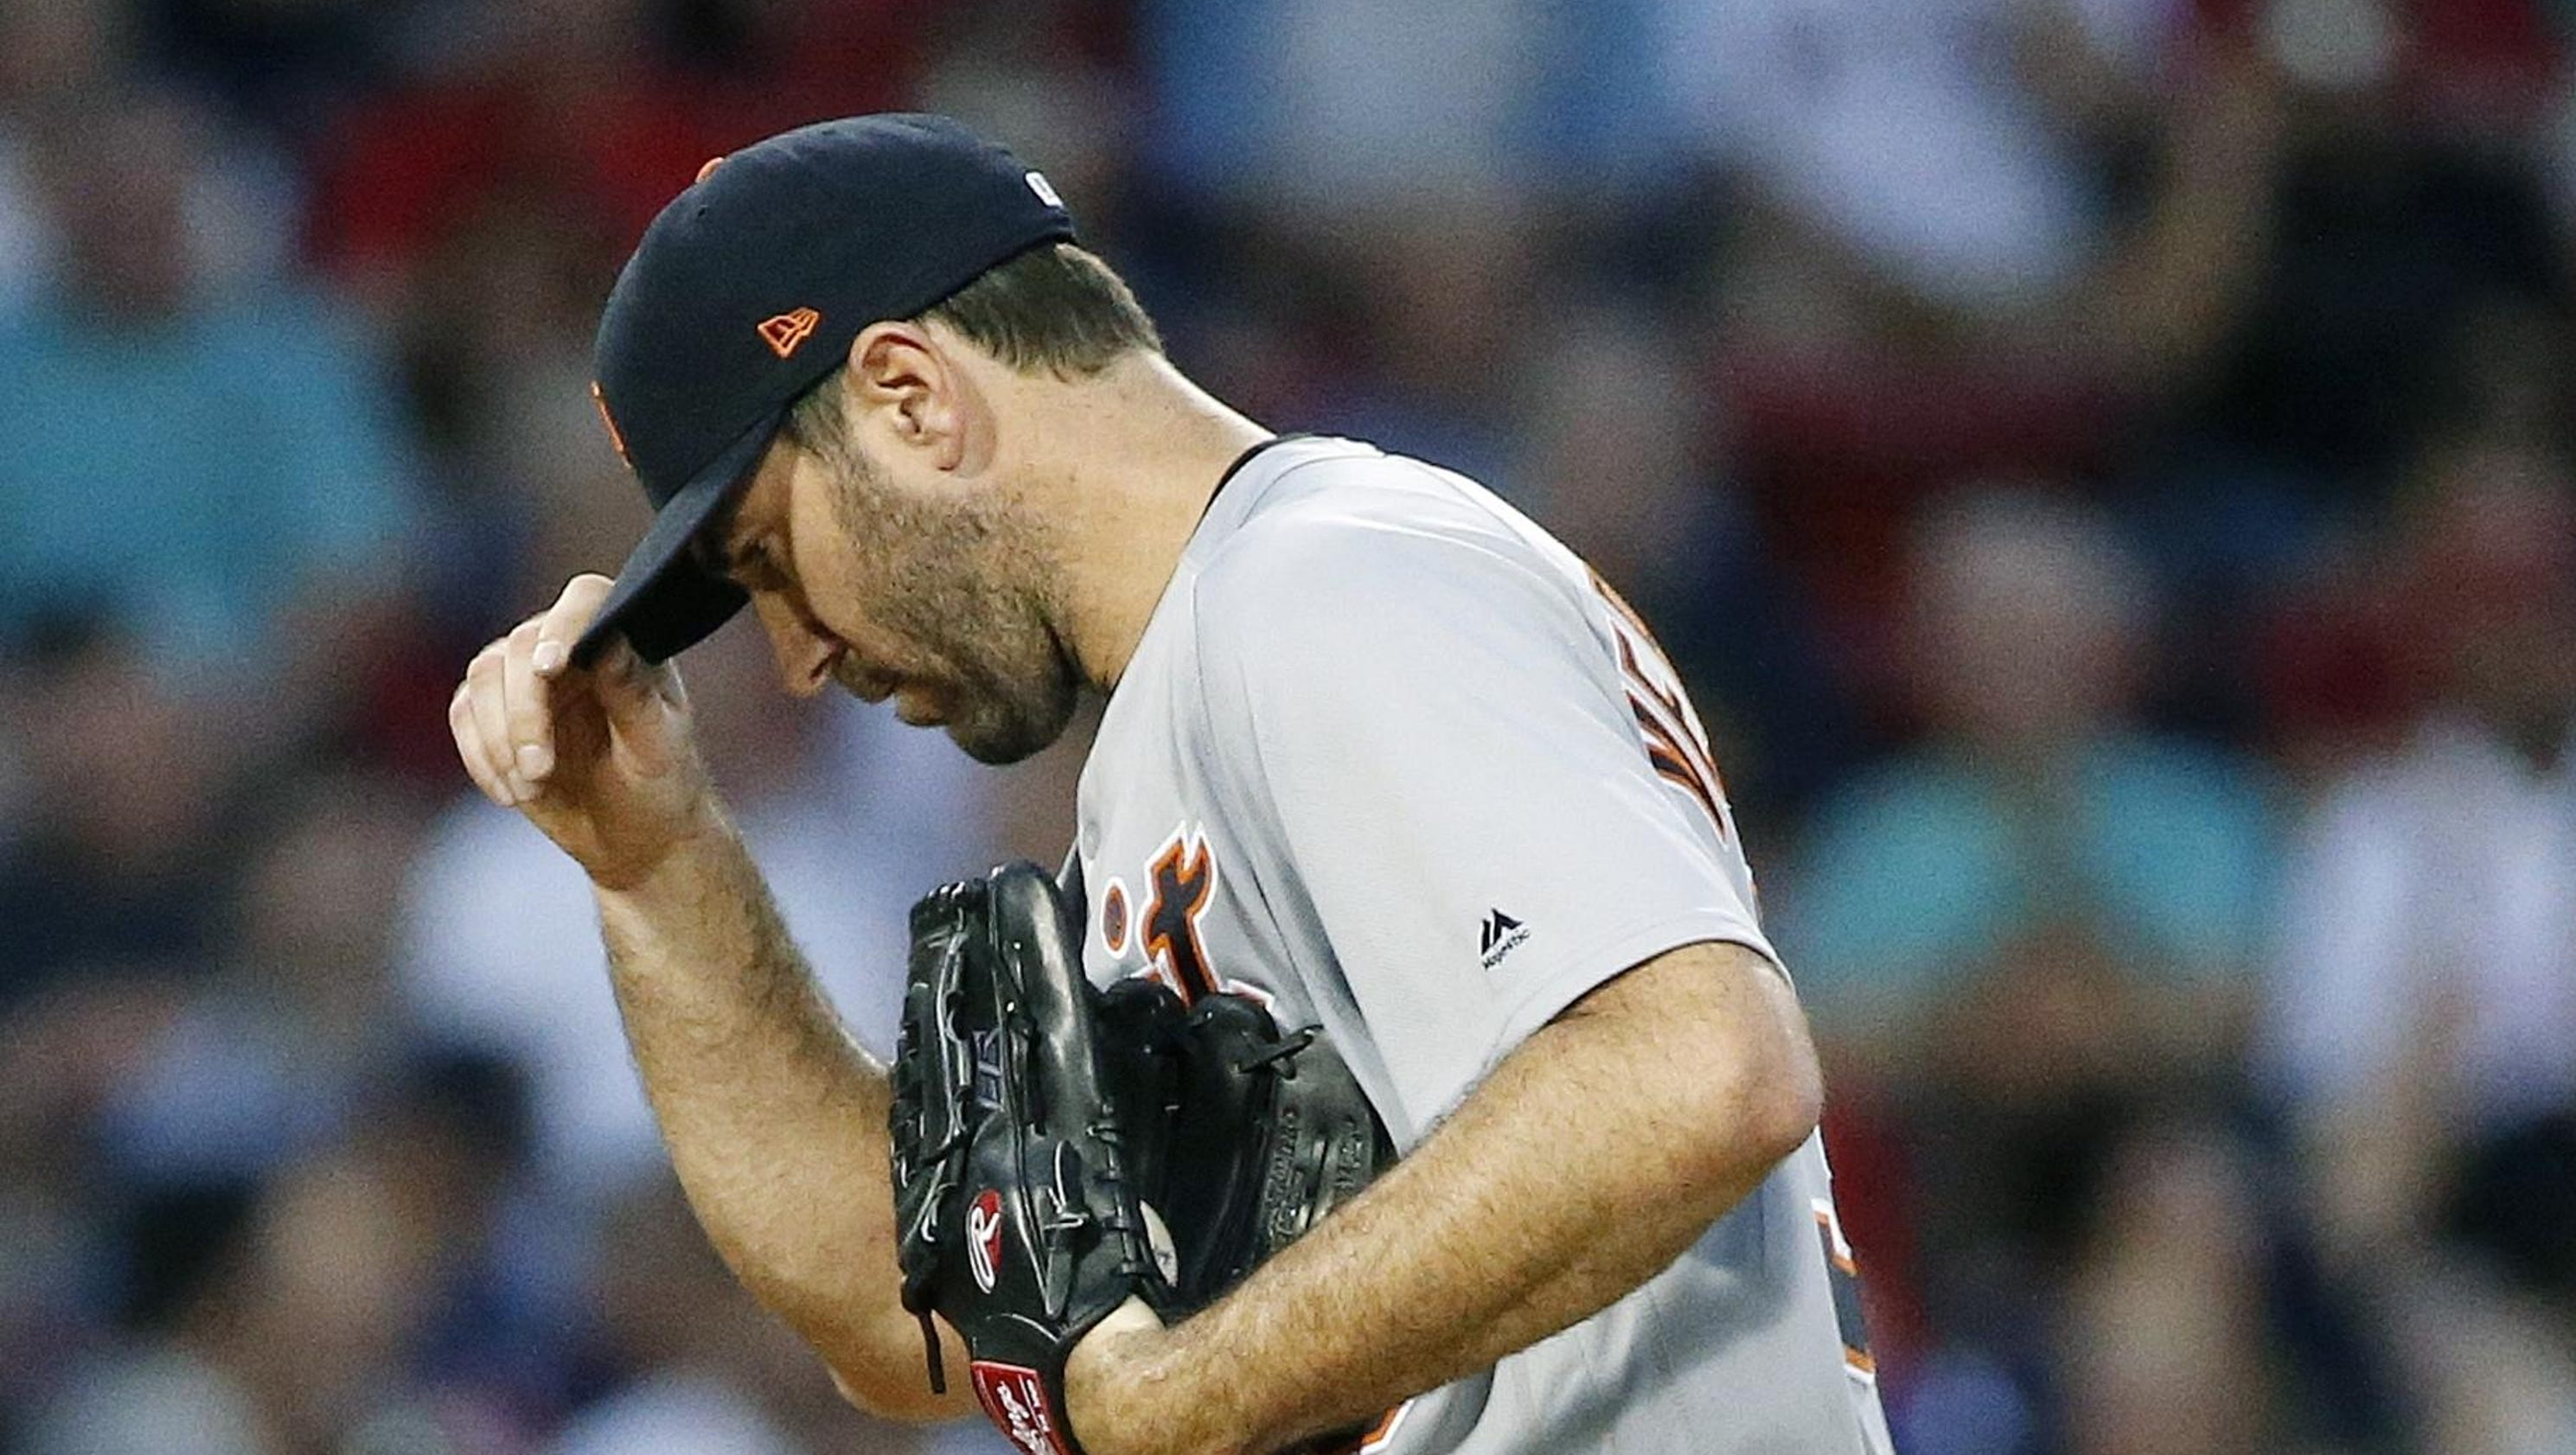 f06a9ee5 Boston — For six innings Saturday, a baseball game at Fenway Park  essentially belonged to two famed starting pitchers who had done most, if  not all, ...